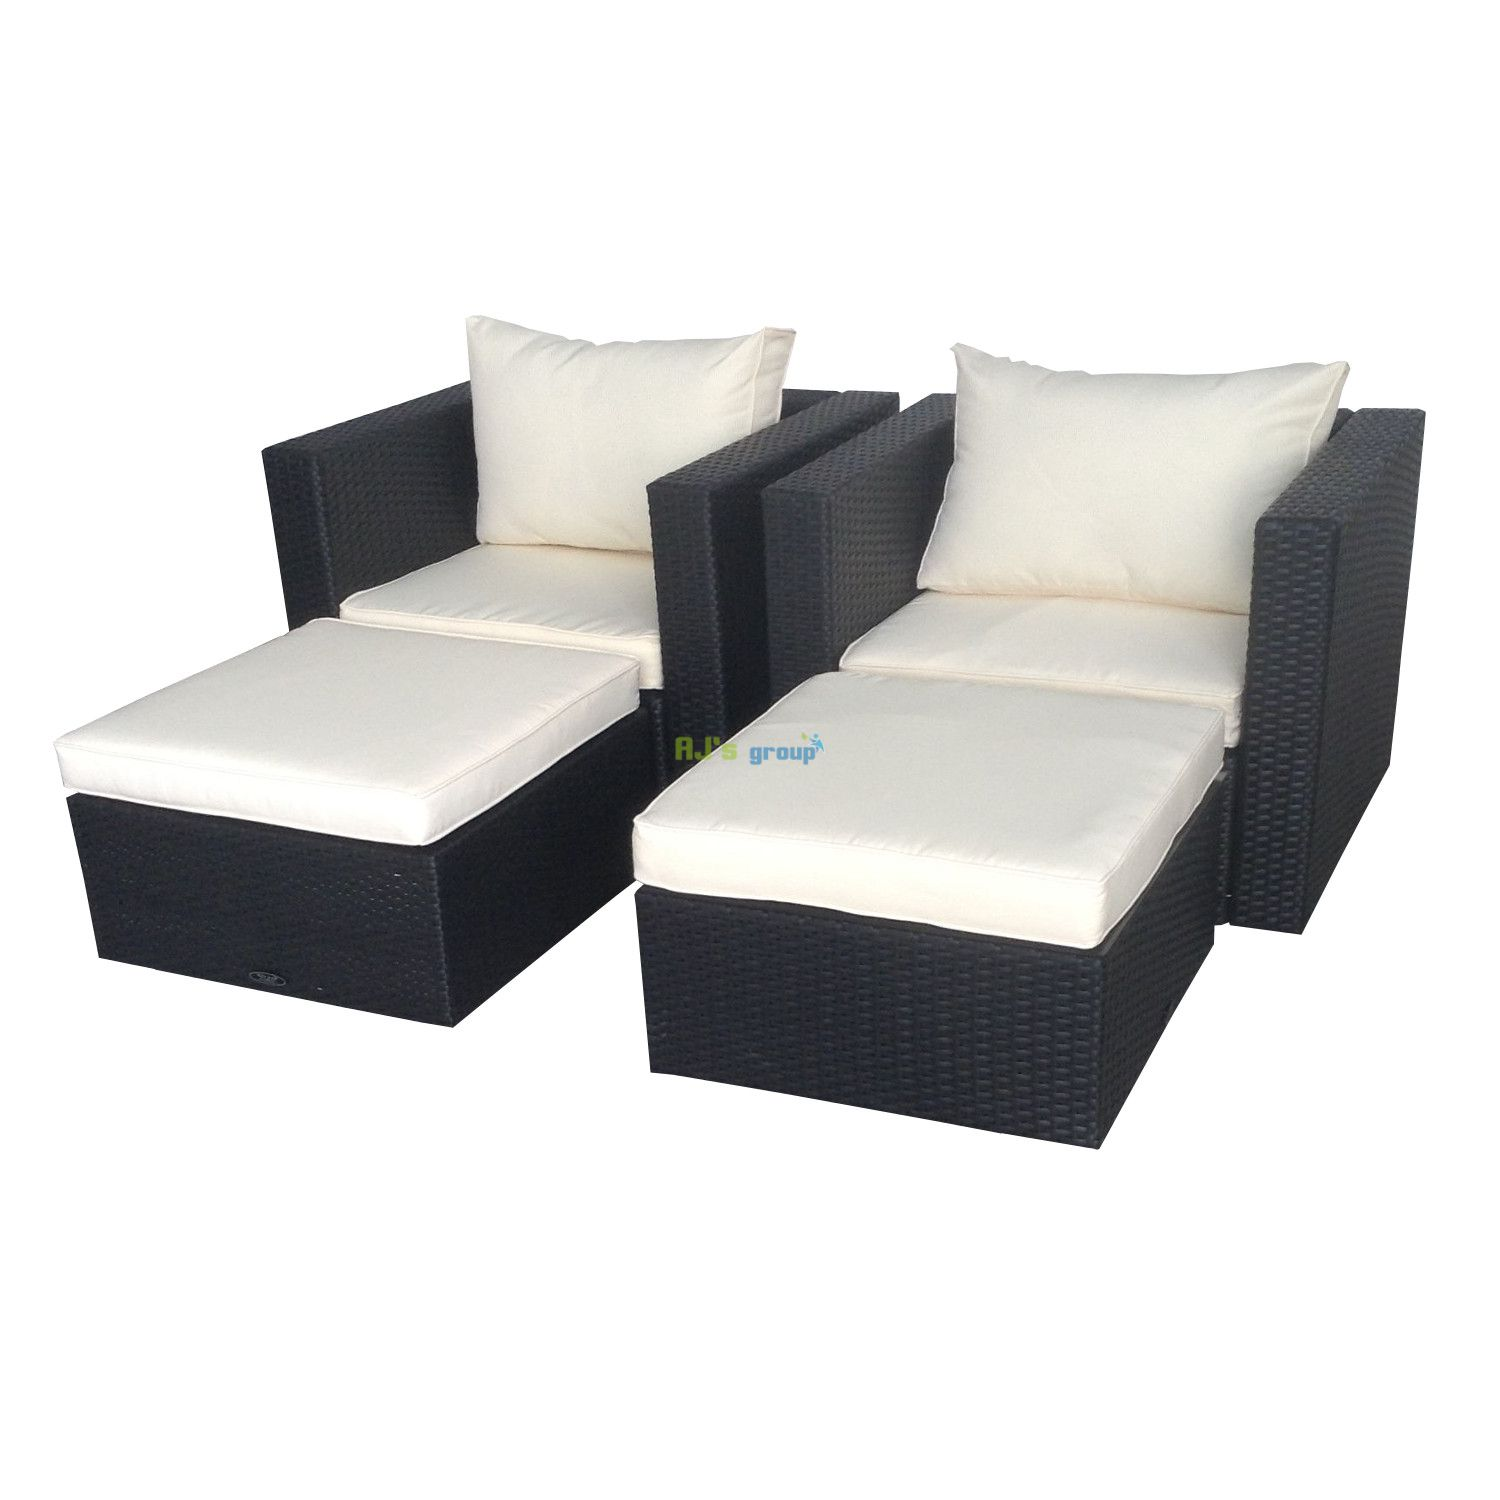 polyrattan gartenmobel lounge bestes inspirationsbild f r hauptentwurf. Black Bedroom Furniture Sets. Home Design Ideas